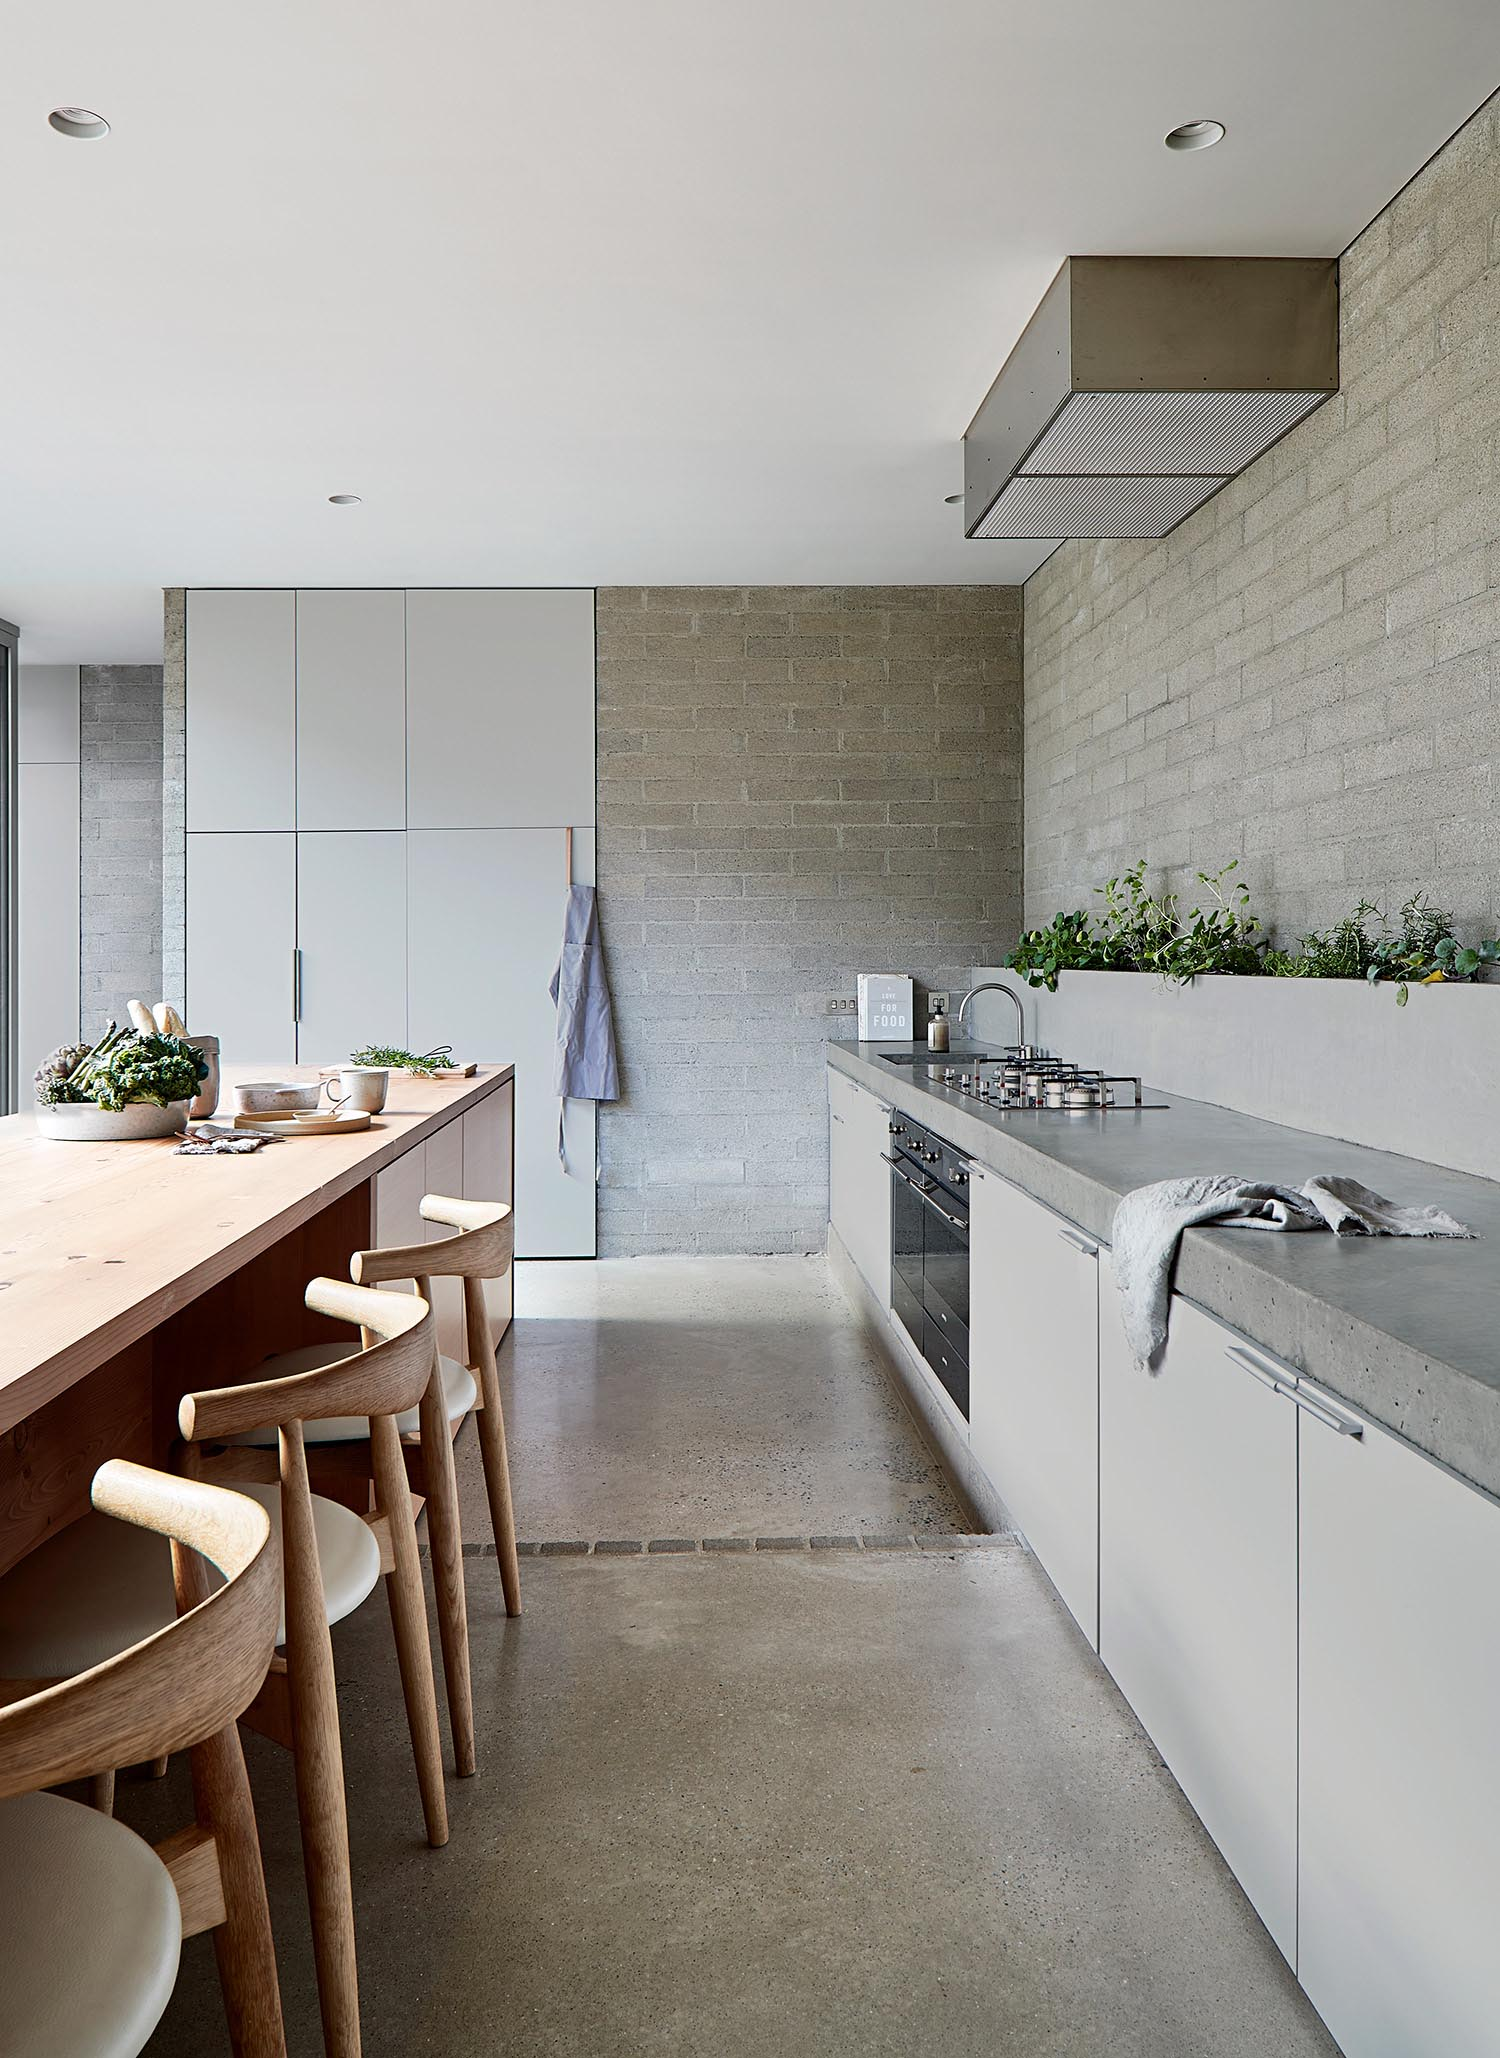 A modern grey kitchen with a wood island and concrete floors.